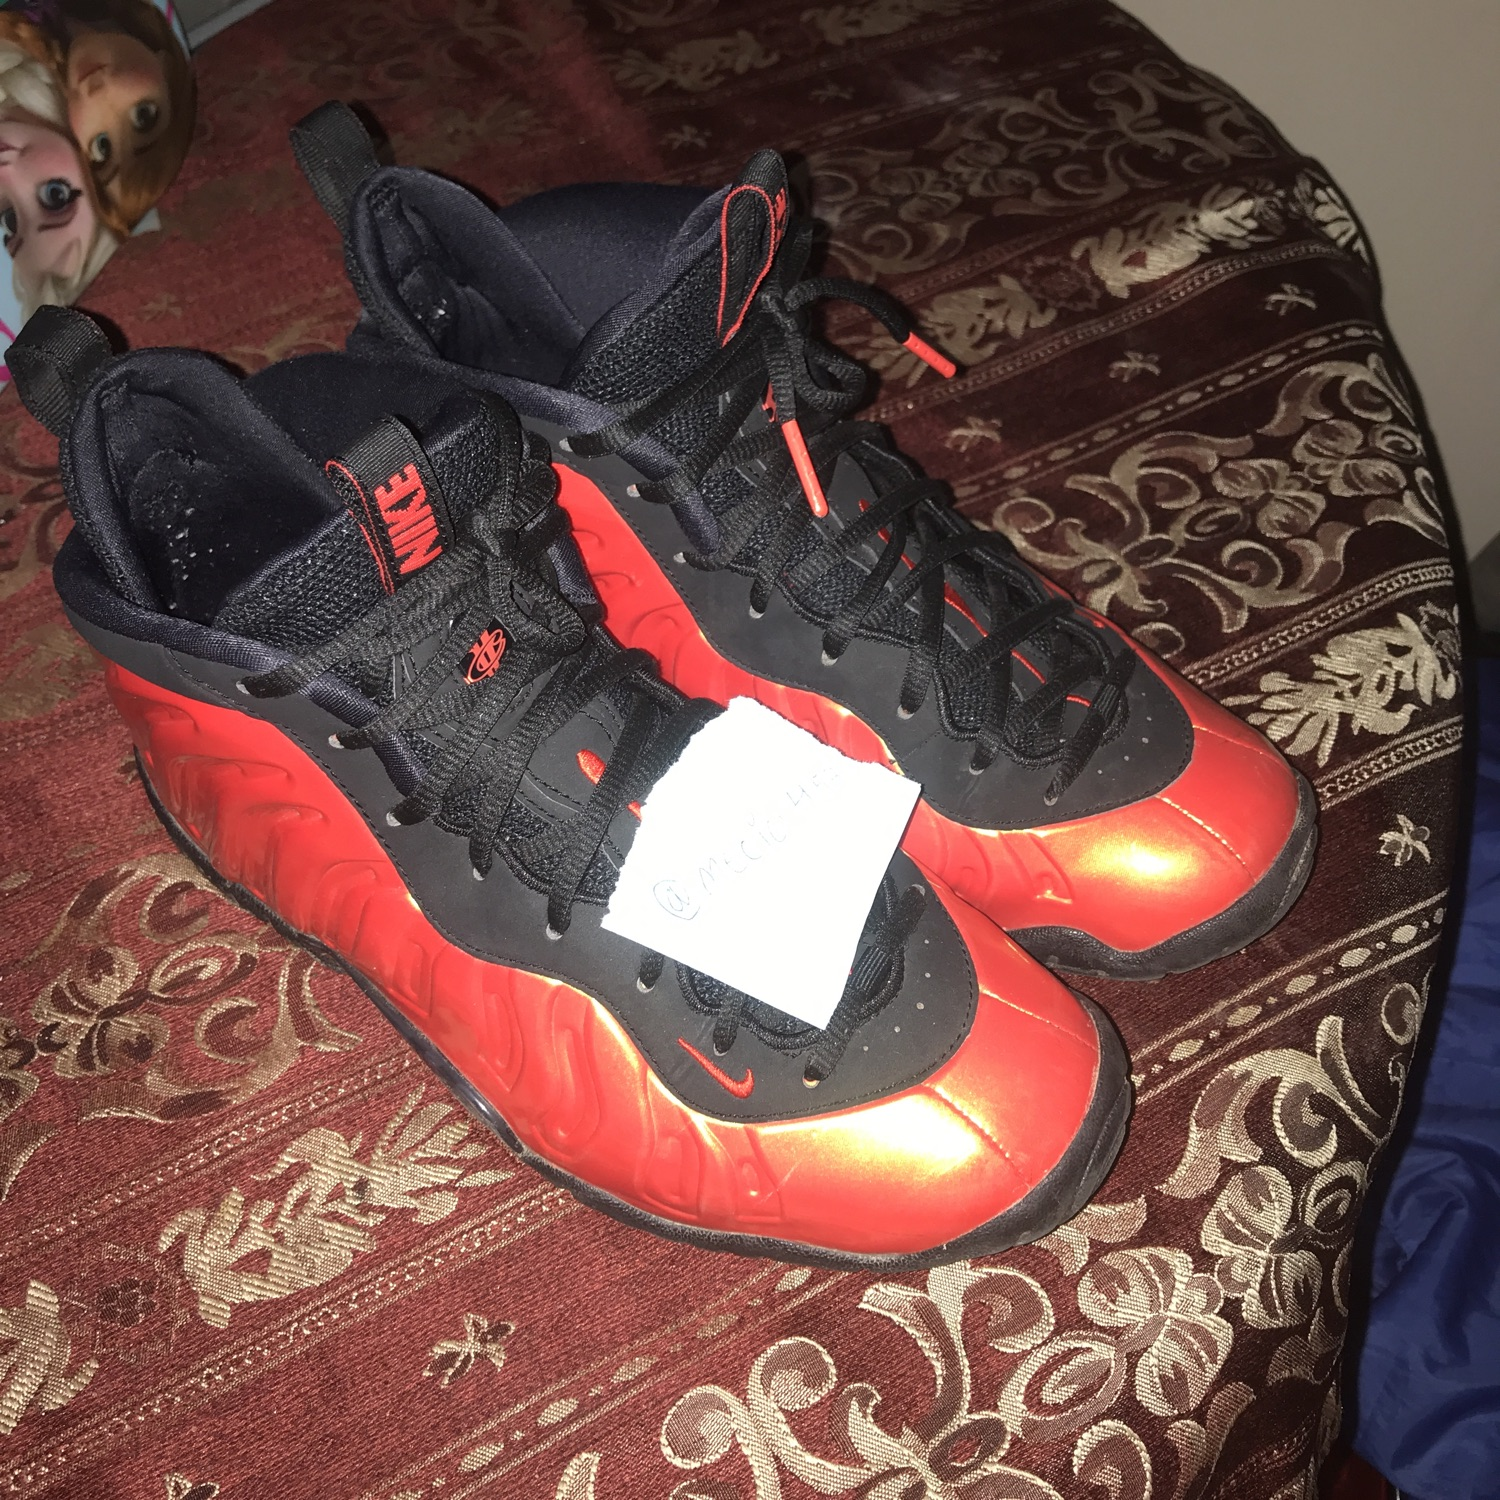 premium selection 2bf1f f73a3 Habanero Red Foamposites(Gs) Size 7